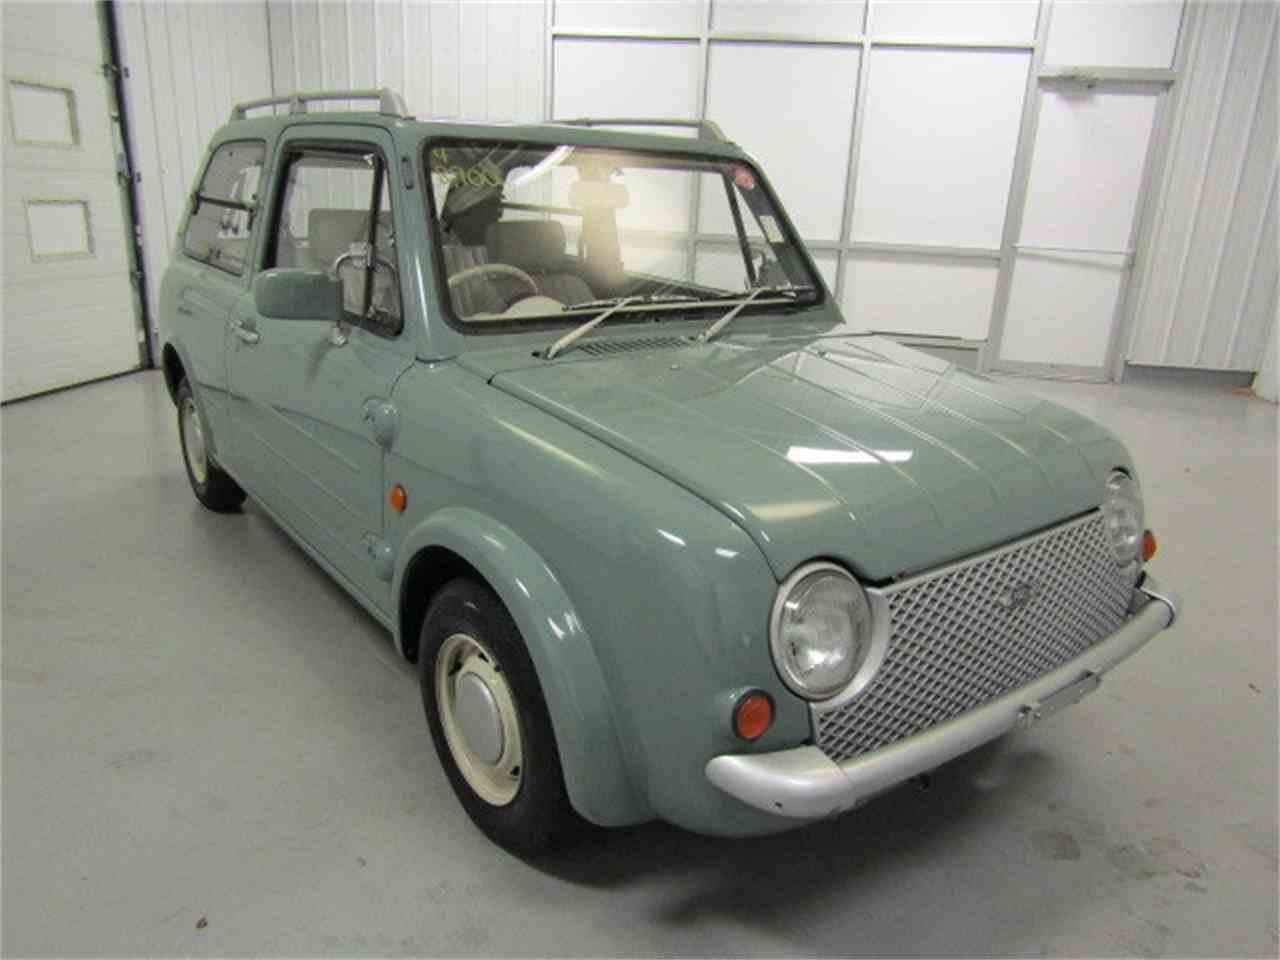 1990 Nissan Pao for Sale - CC-1003205